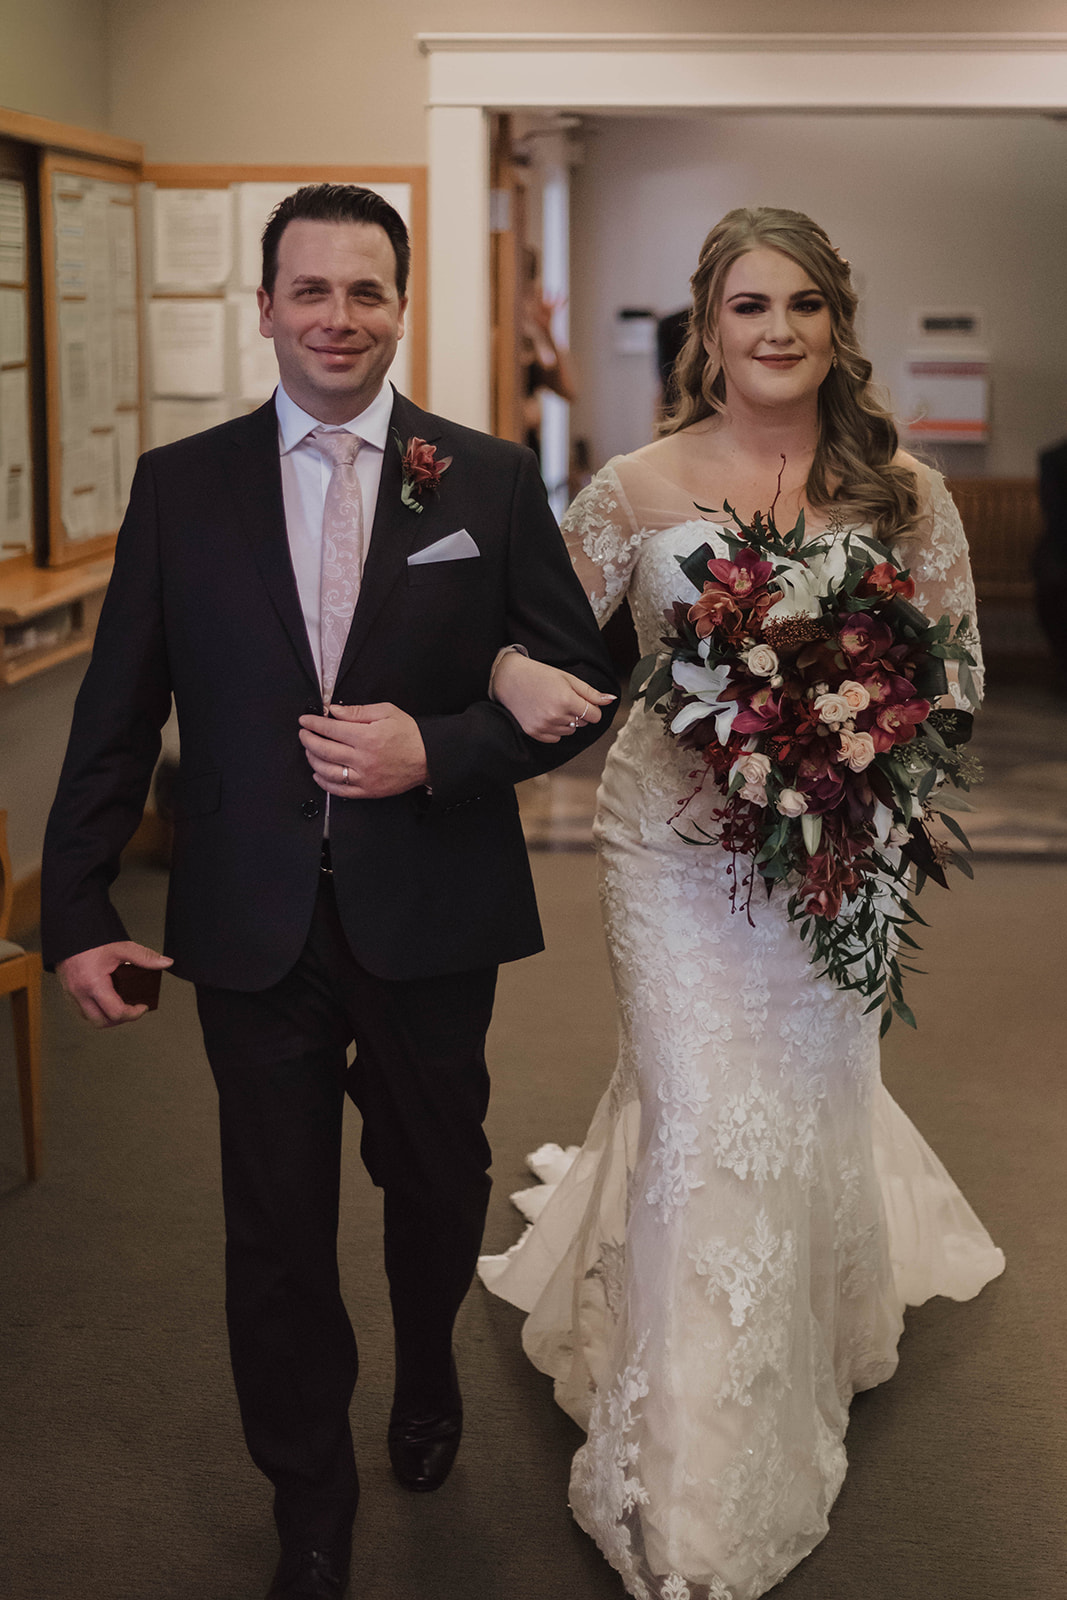 Father walks bride in form fitting lace gown